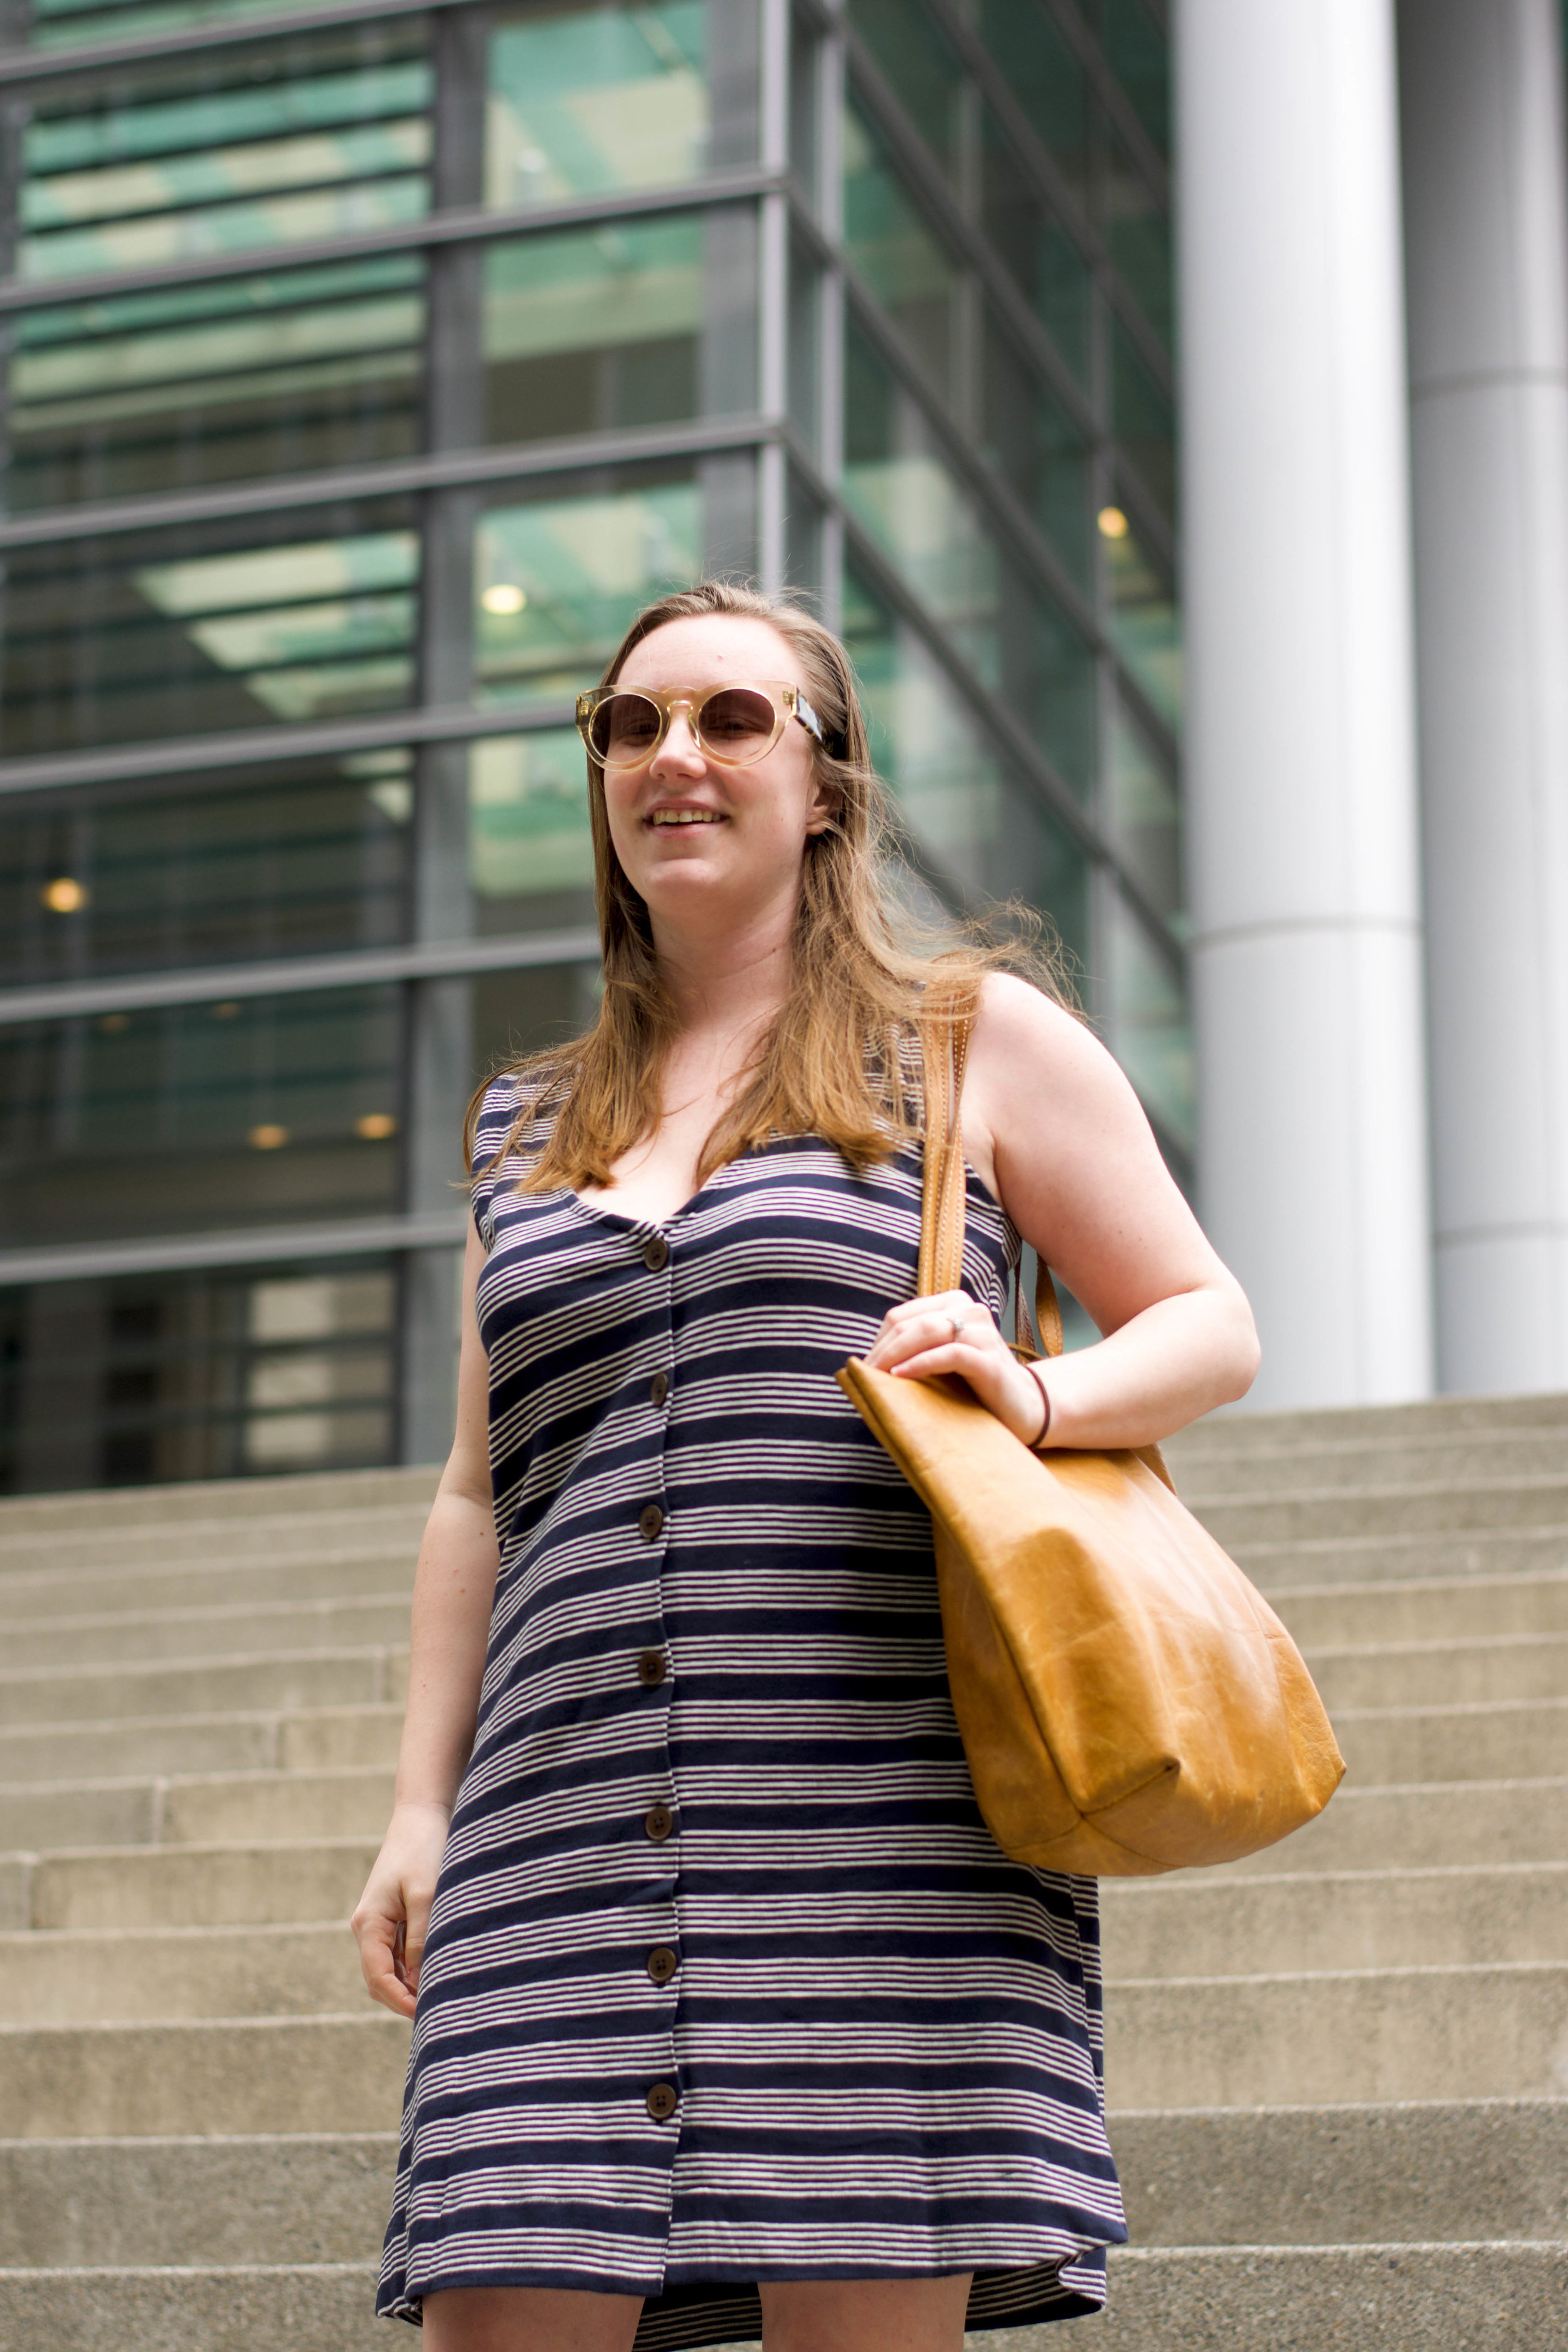 Wearing PACT Button Tank Dress + Dynamikos sunglasses + Lazarus Artisan Goods Tote